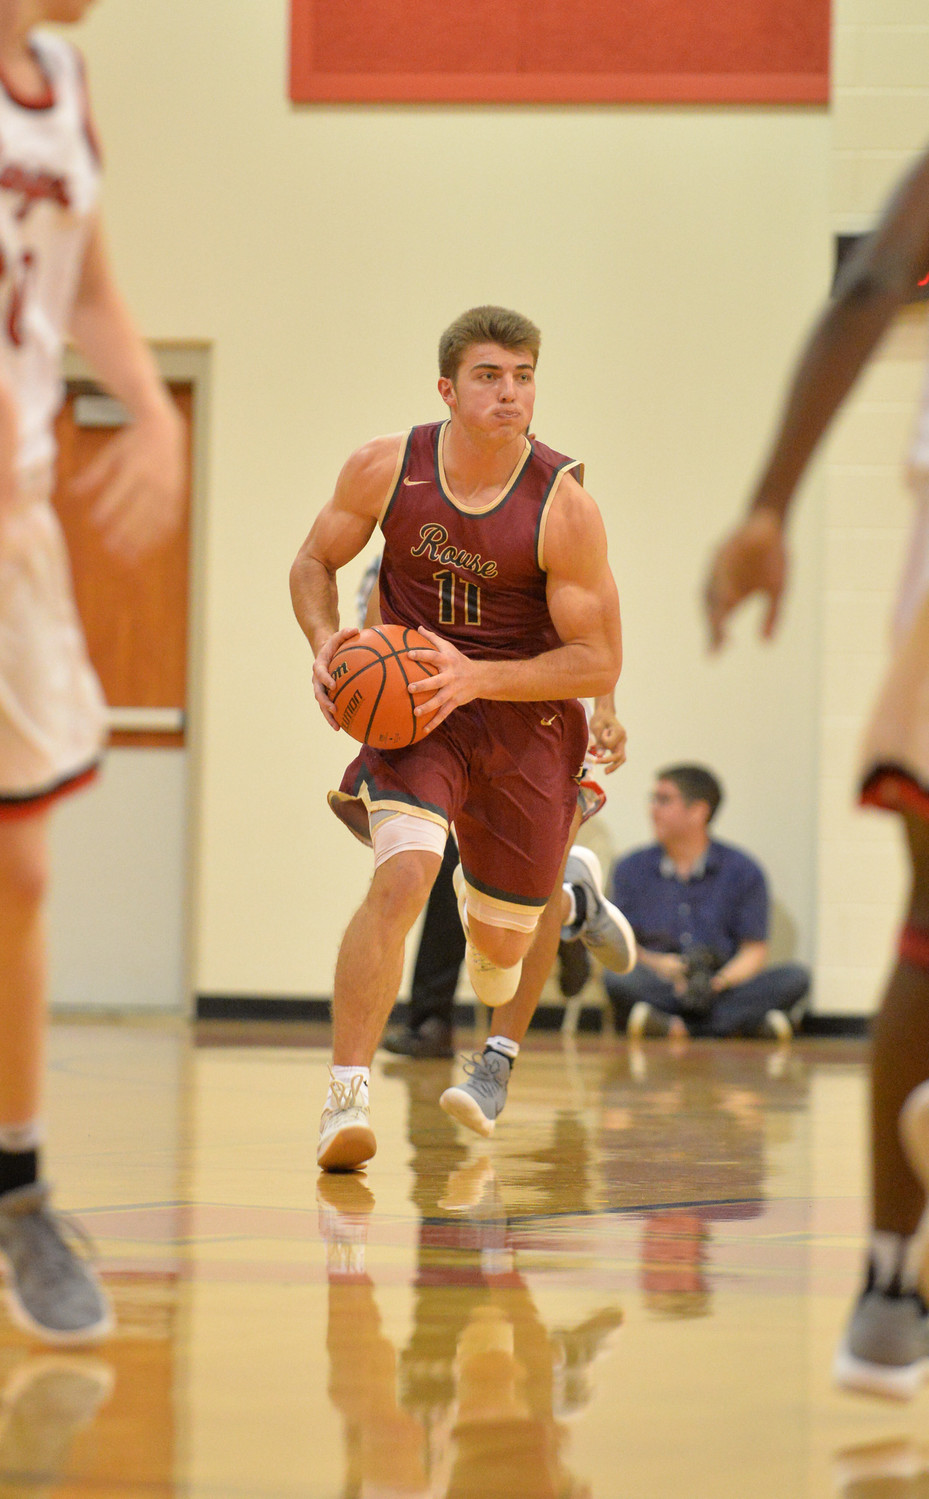 Rouse senior Carter McMahan averages 12.6 points and leads the team with 7.8 rebounds per game.